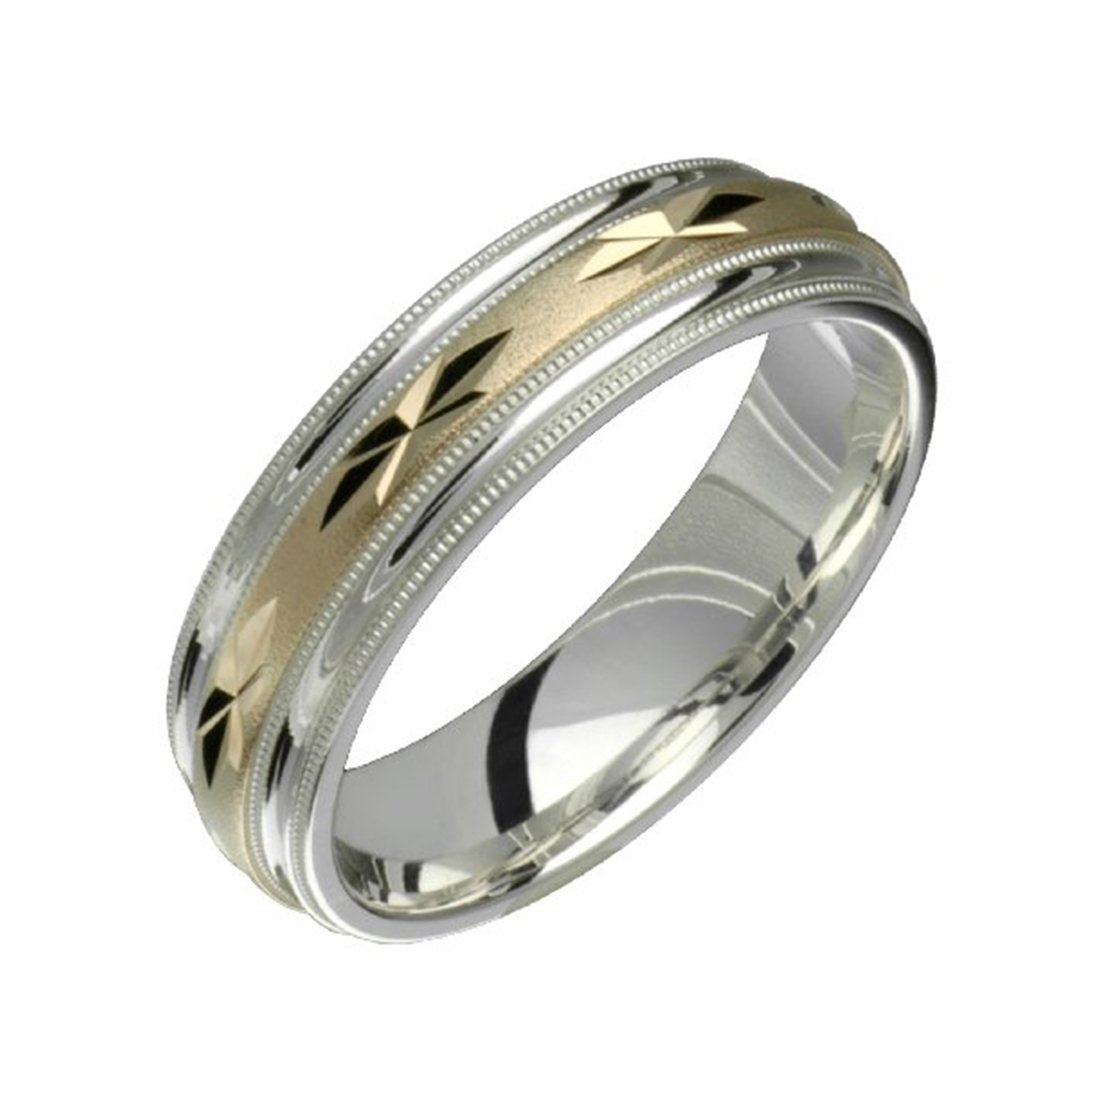 Alain Raphael 2 Tone Sterling Silver and 10k Yellow Gold 6 Millimeters Wide Wedding Band Ring